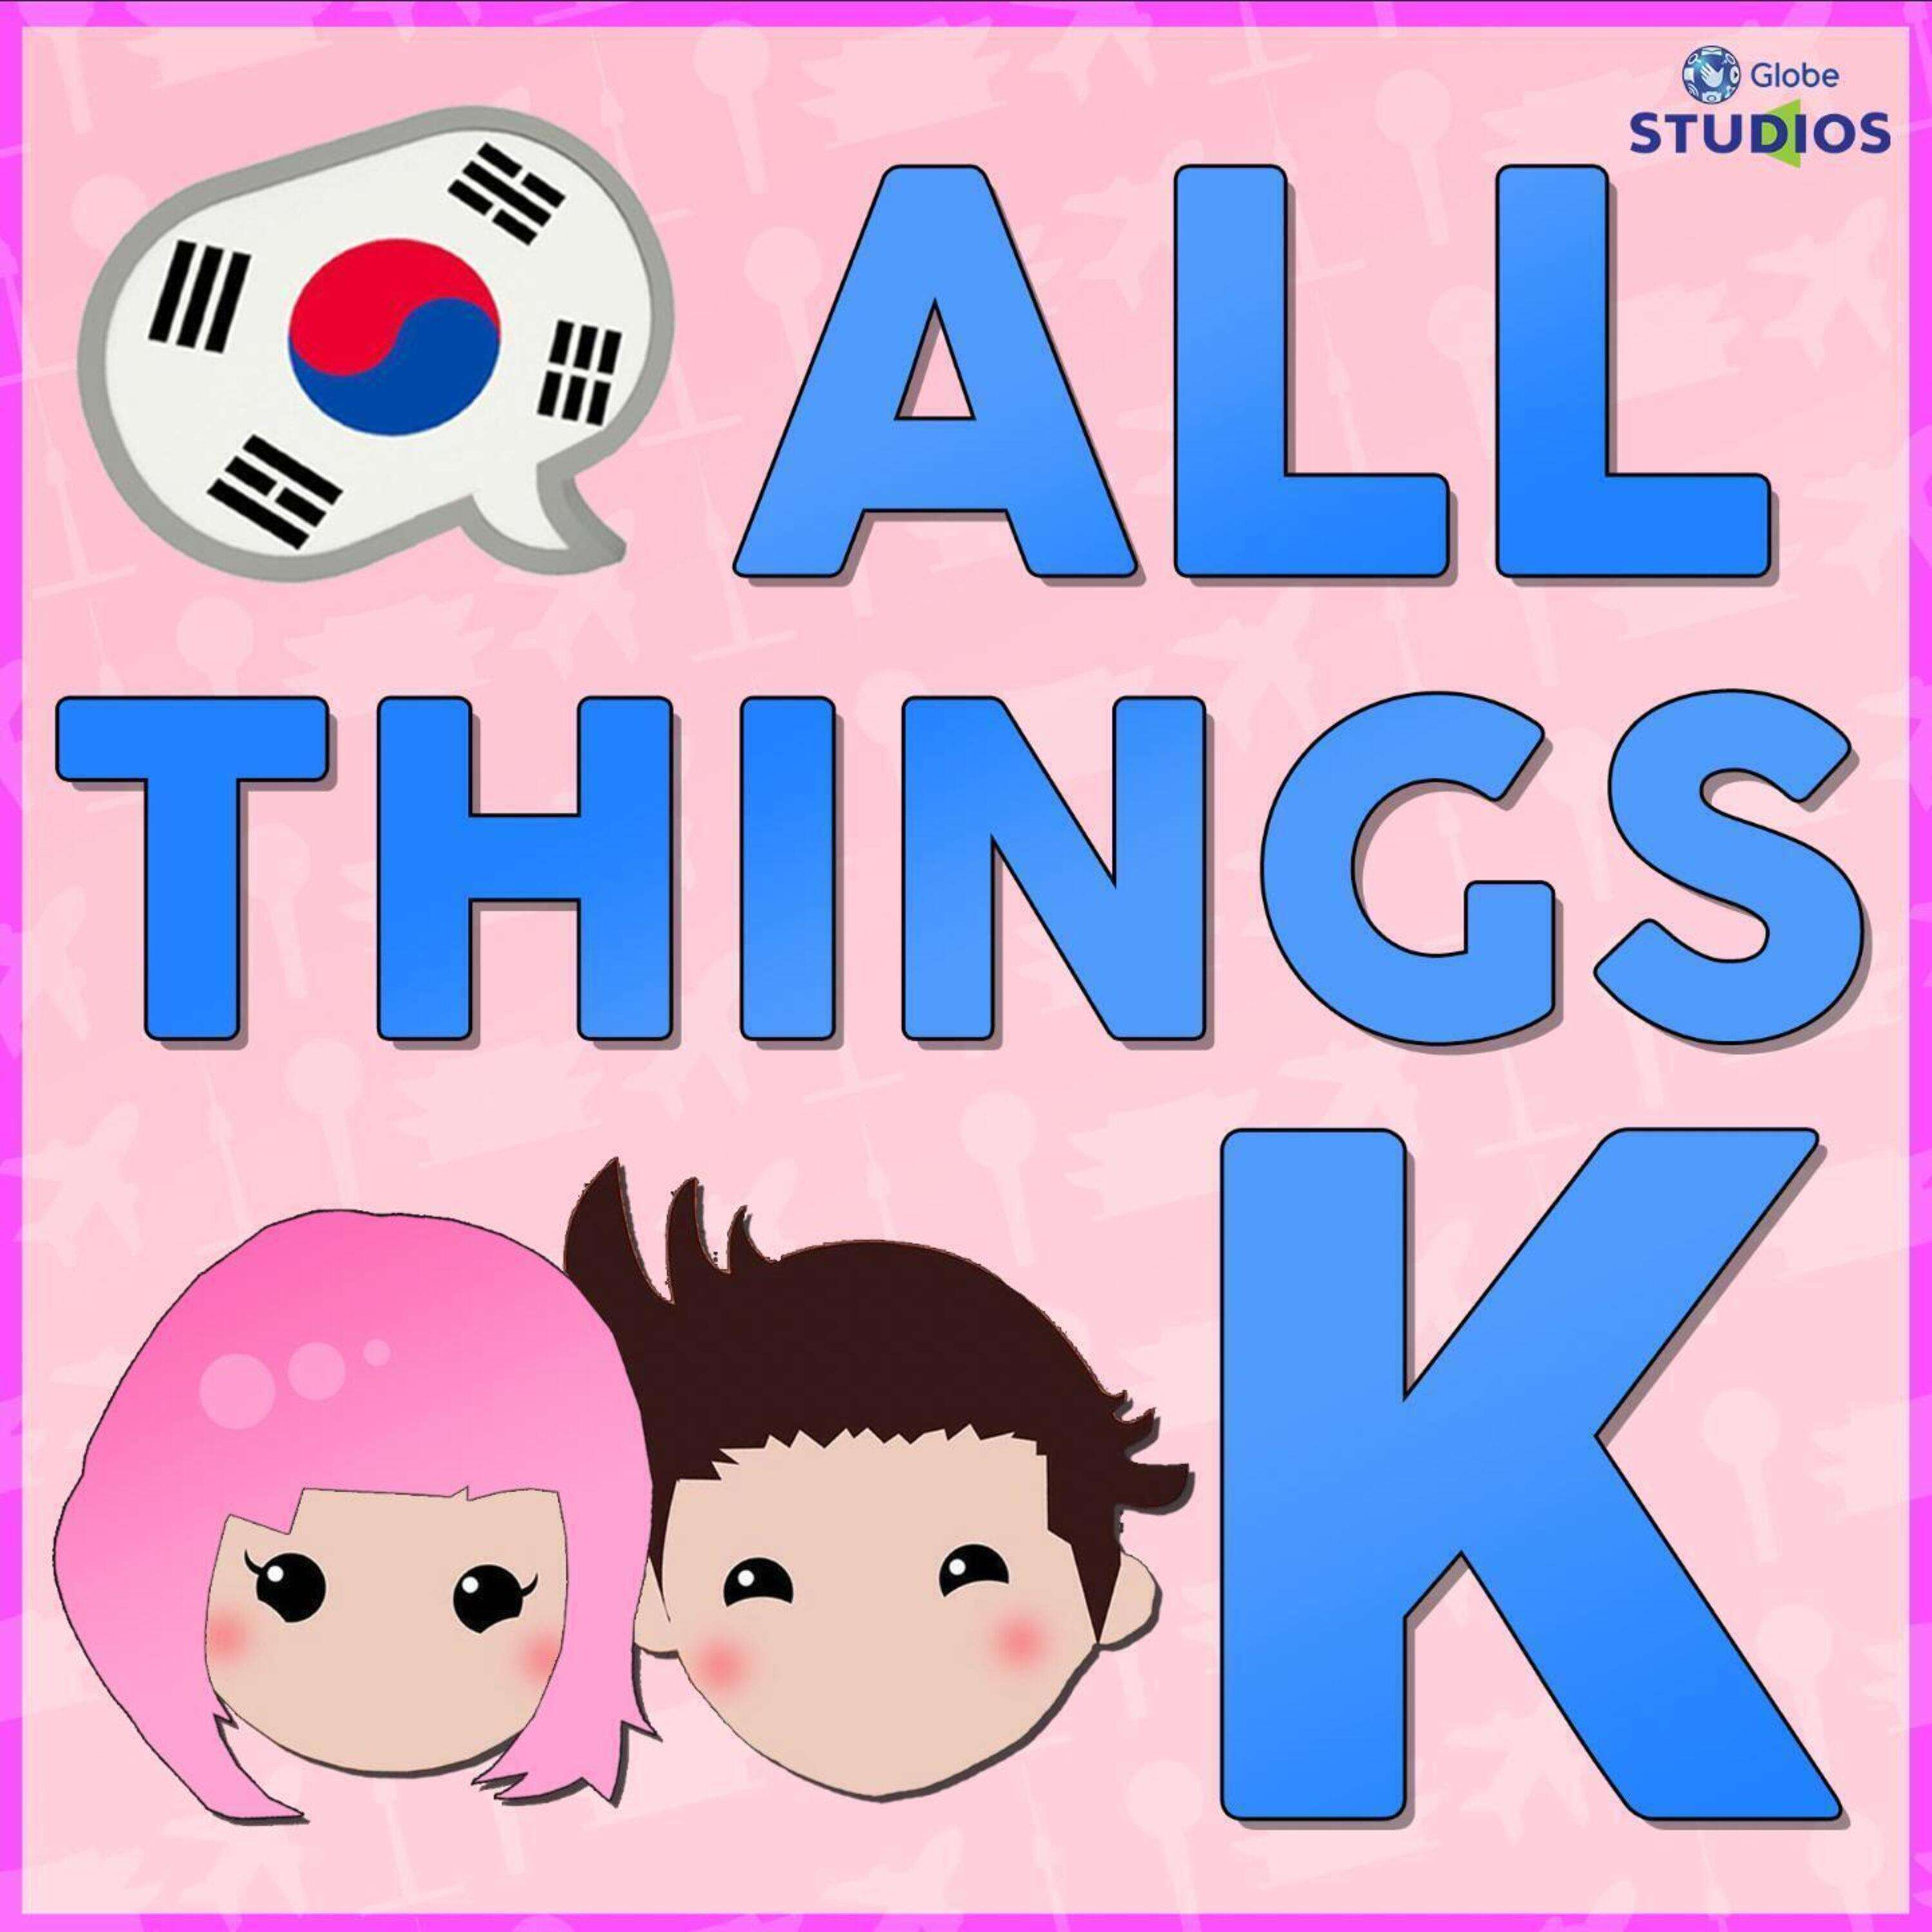 Annyeonghaseyo from All Things K!